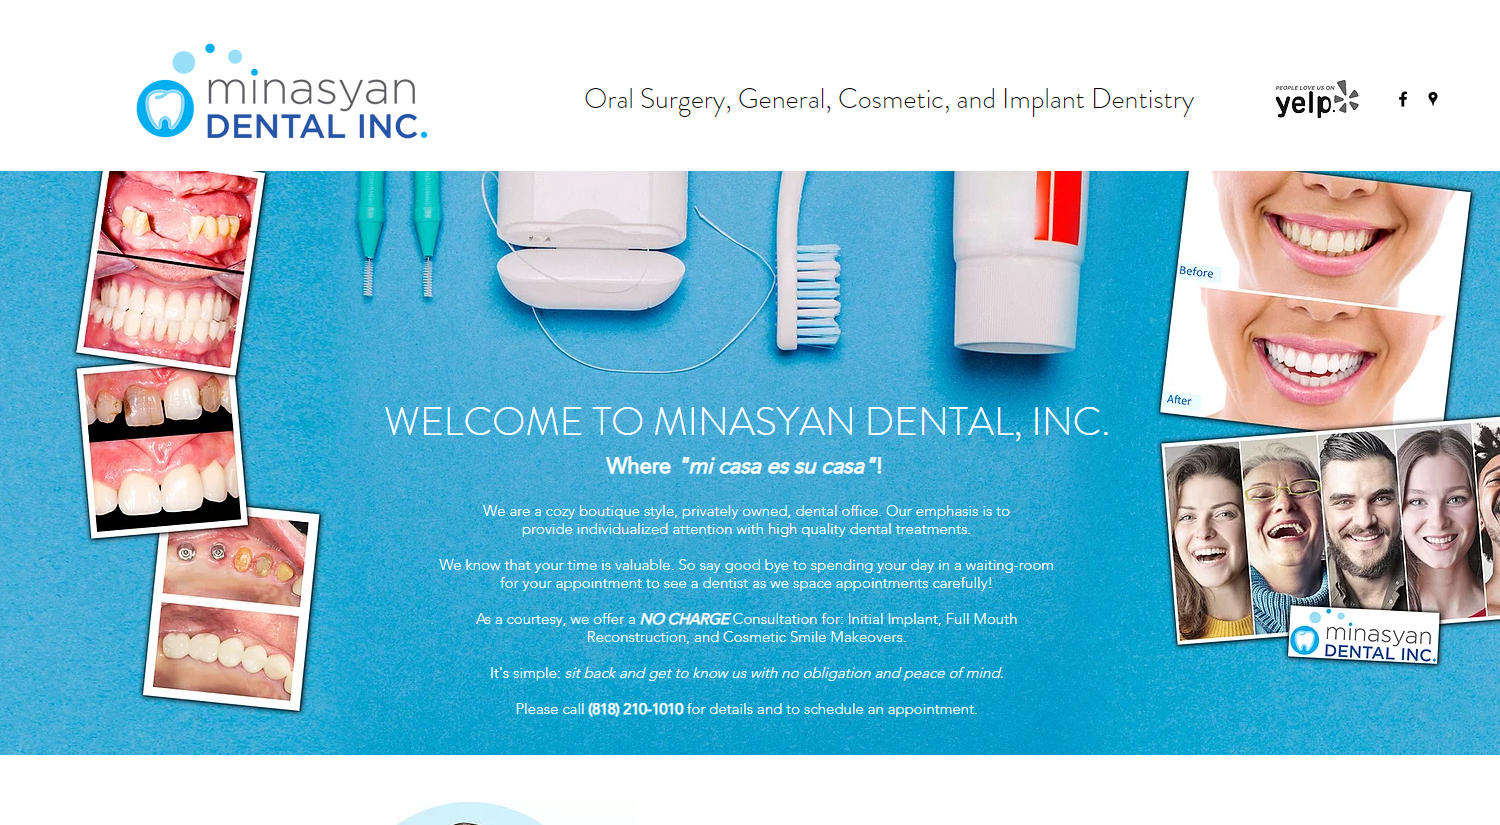 Minasyan Dental